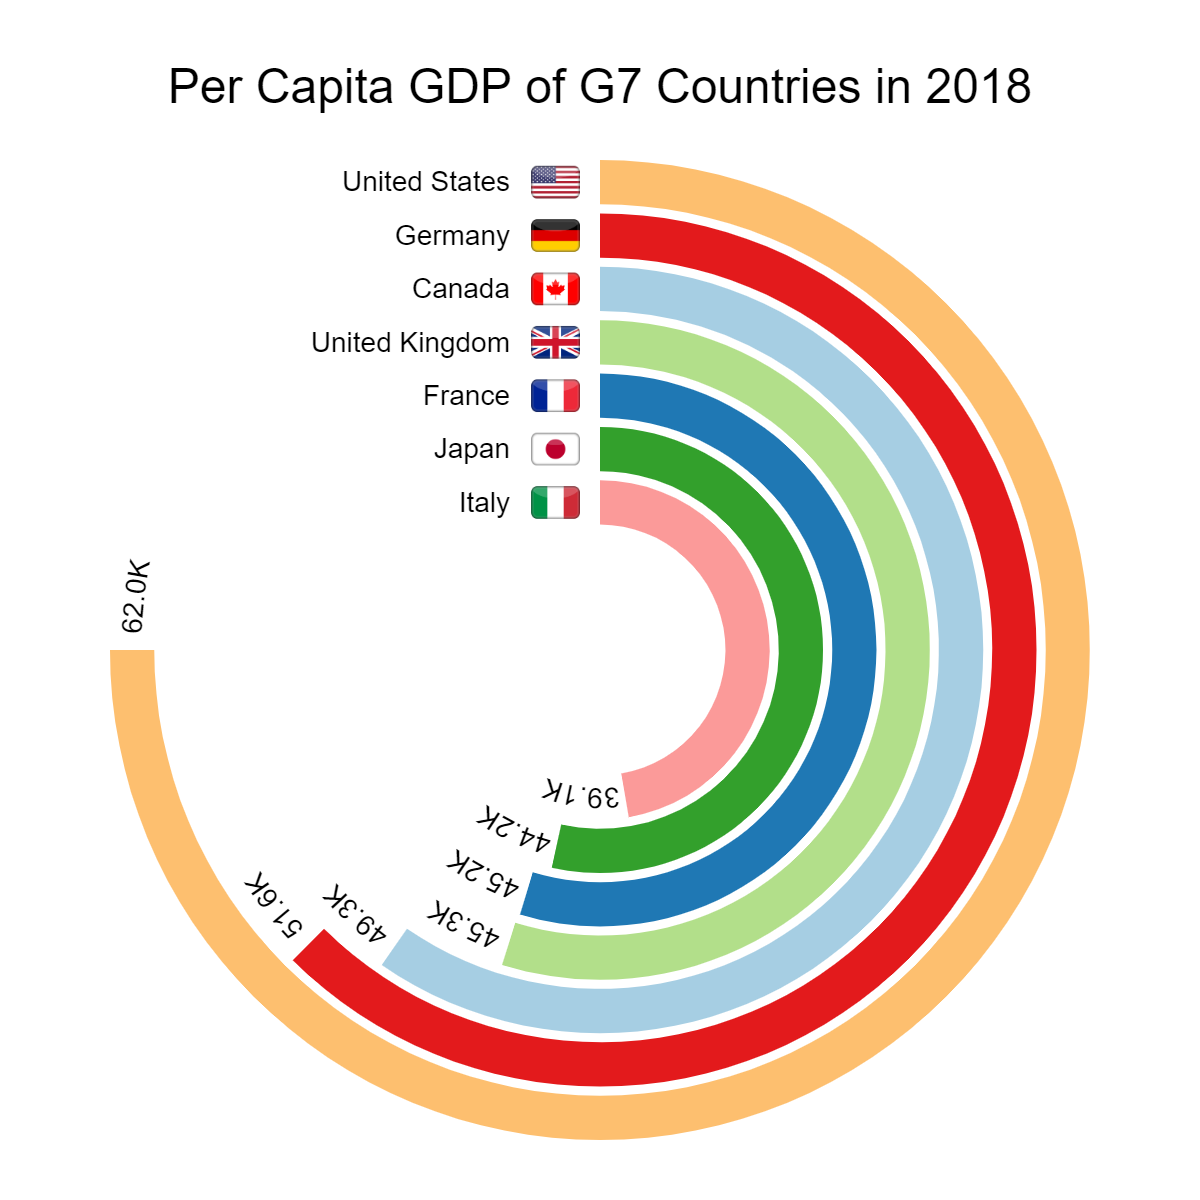 Per Capita GDP of G7 Countries in 2018